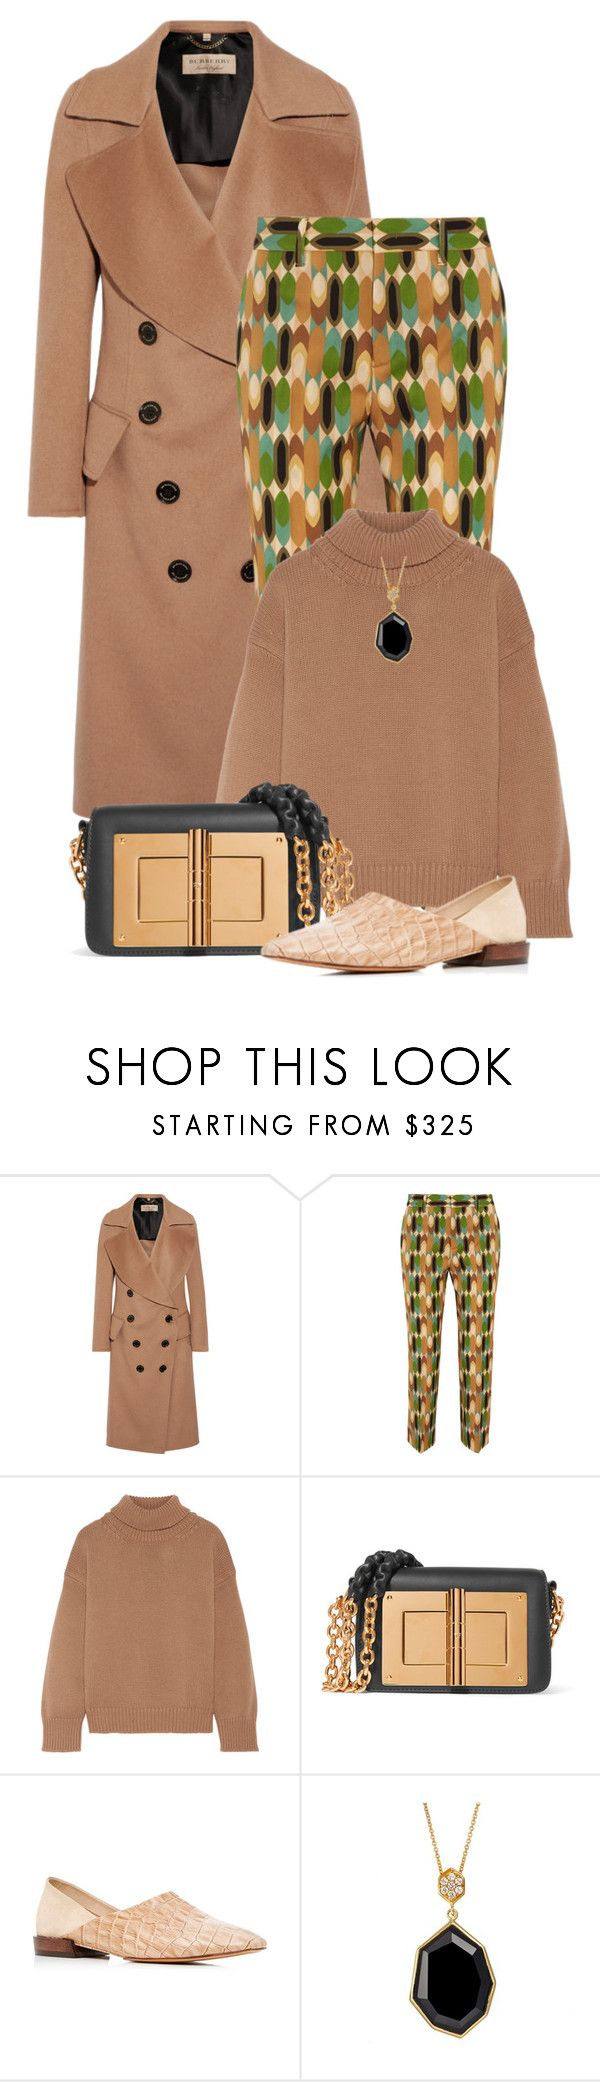 """Burberry Coat Outfit Only"" by shamrockclover ❤ liked on Polyvore featuring Burberry, Prada, Mansur Gavriel, Tom Ford, Mari Giudicelli and SOPHIE MILLER"